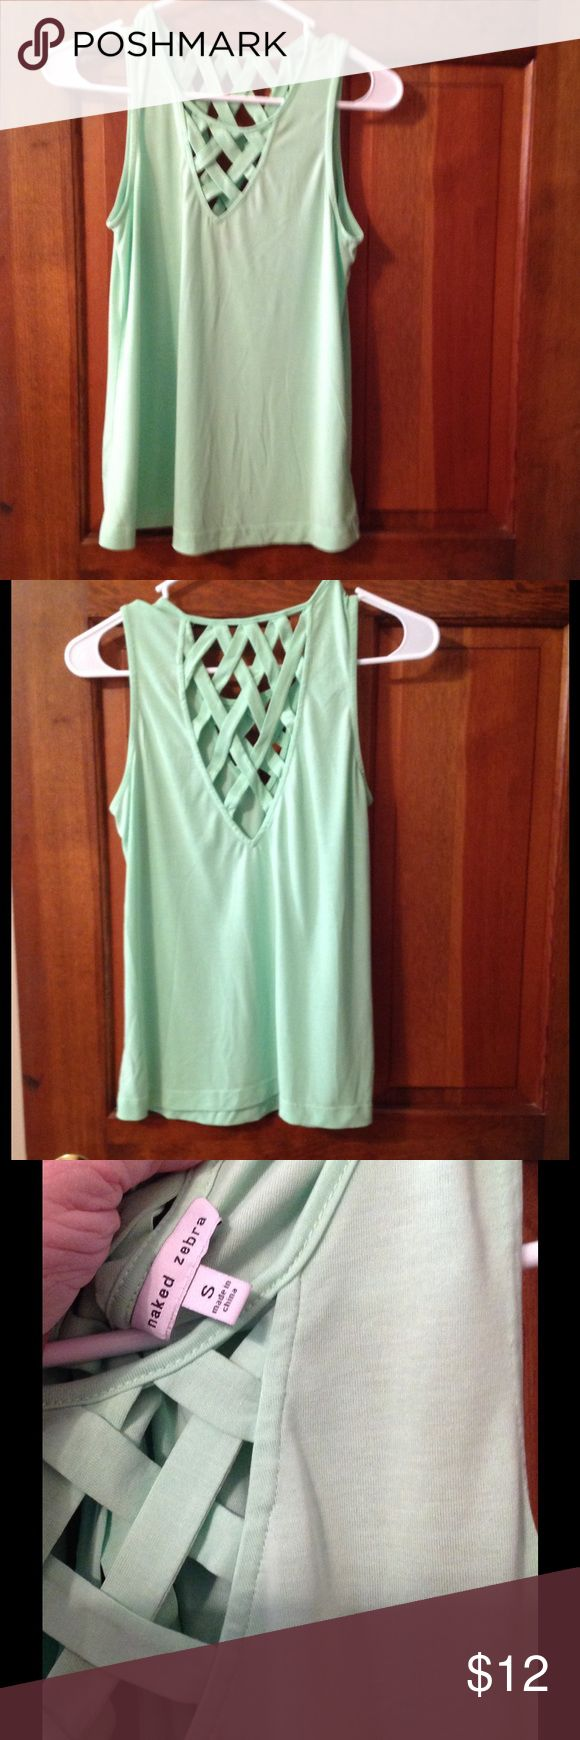 Fun sleeveless top Mint green top. Criss cross designs on the front and back of the shirt. Naked Zebra Tops